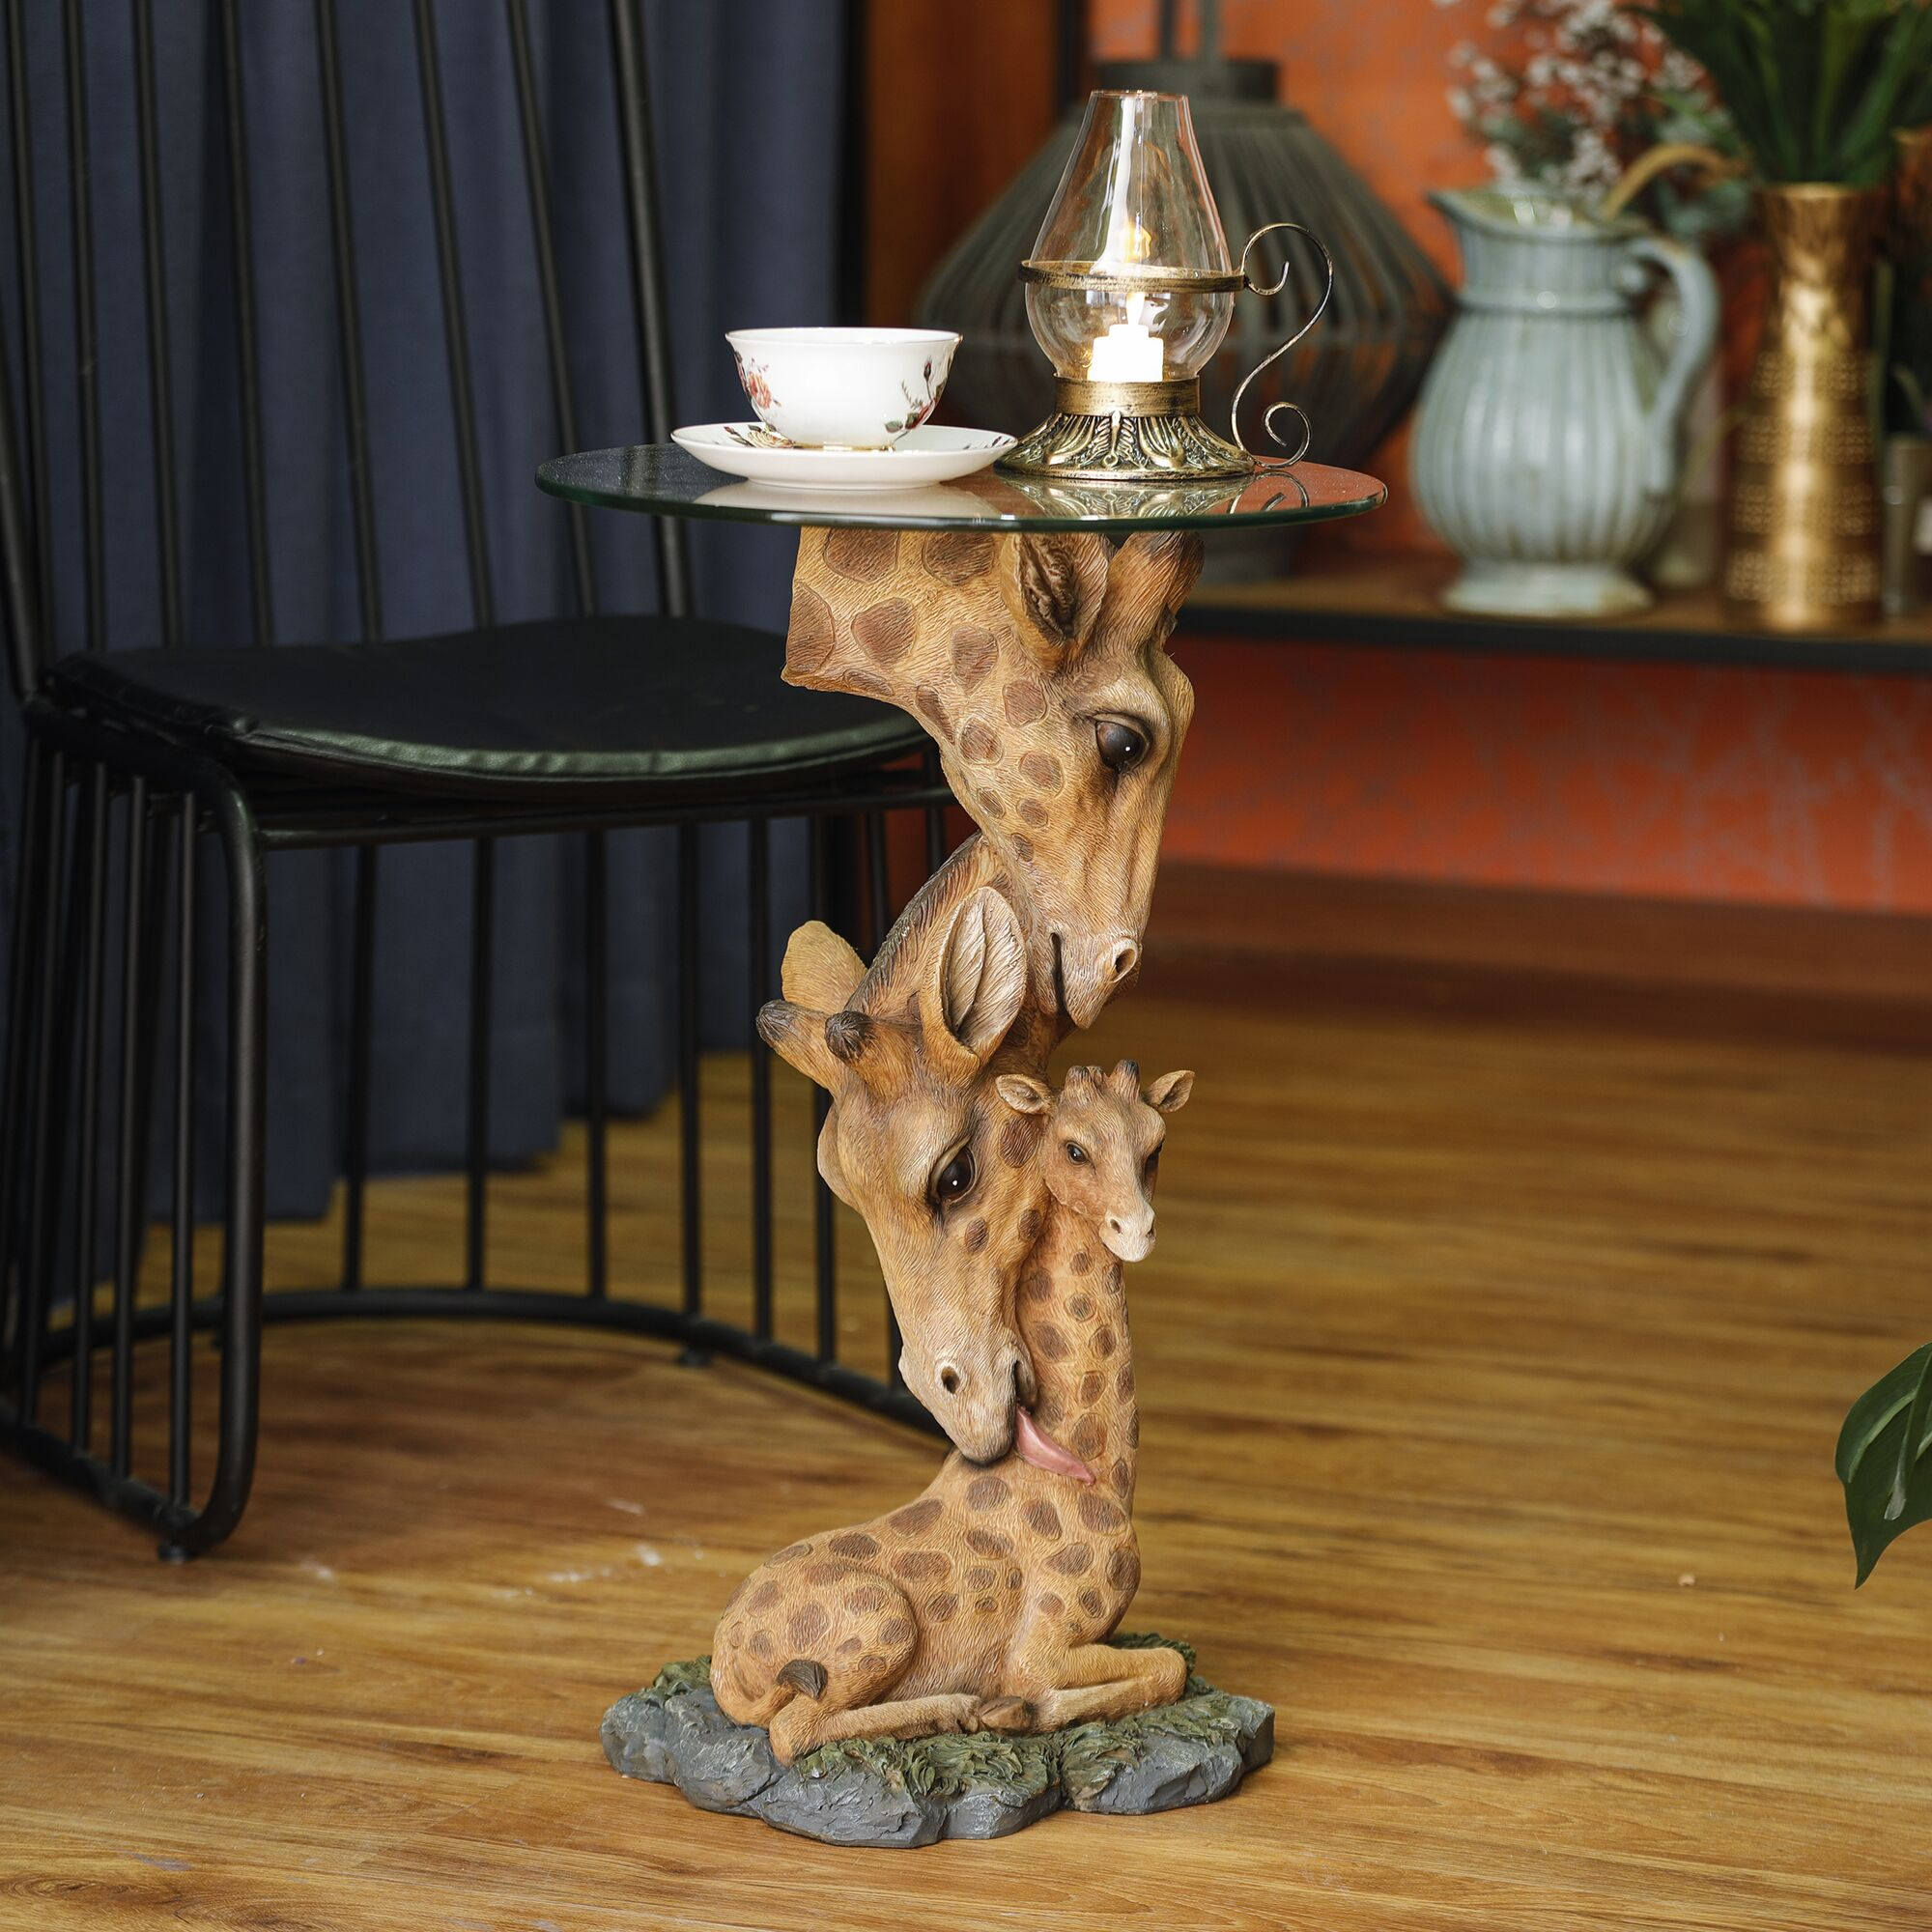 Rhoades Giraffe Family End Table